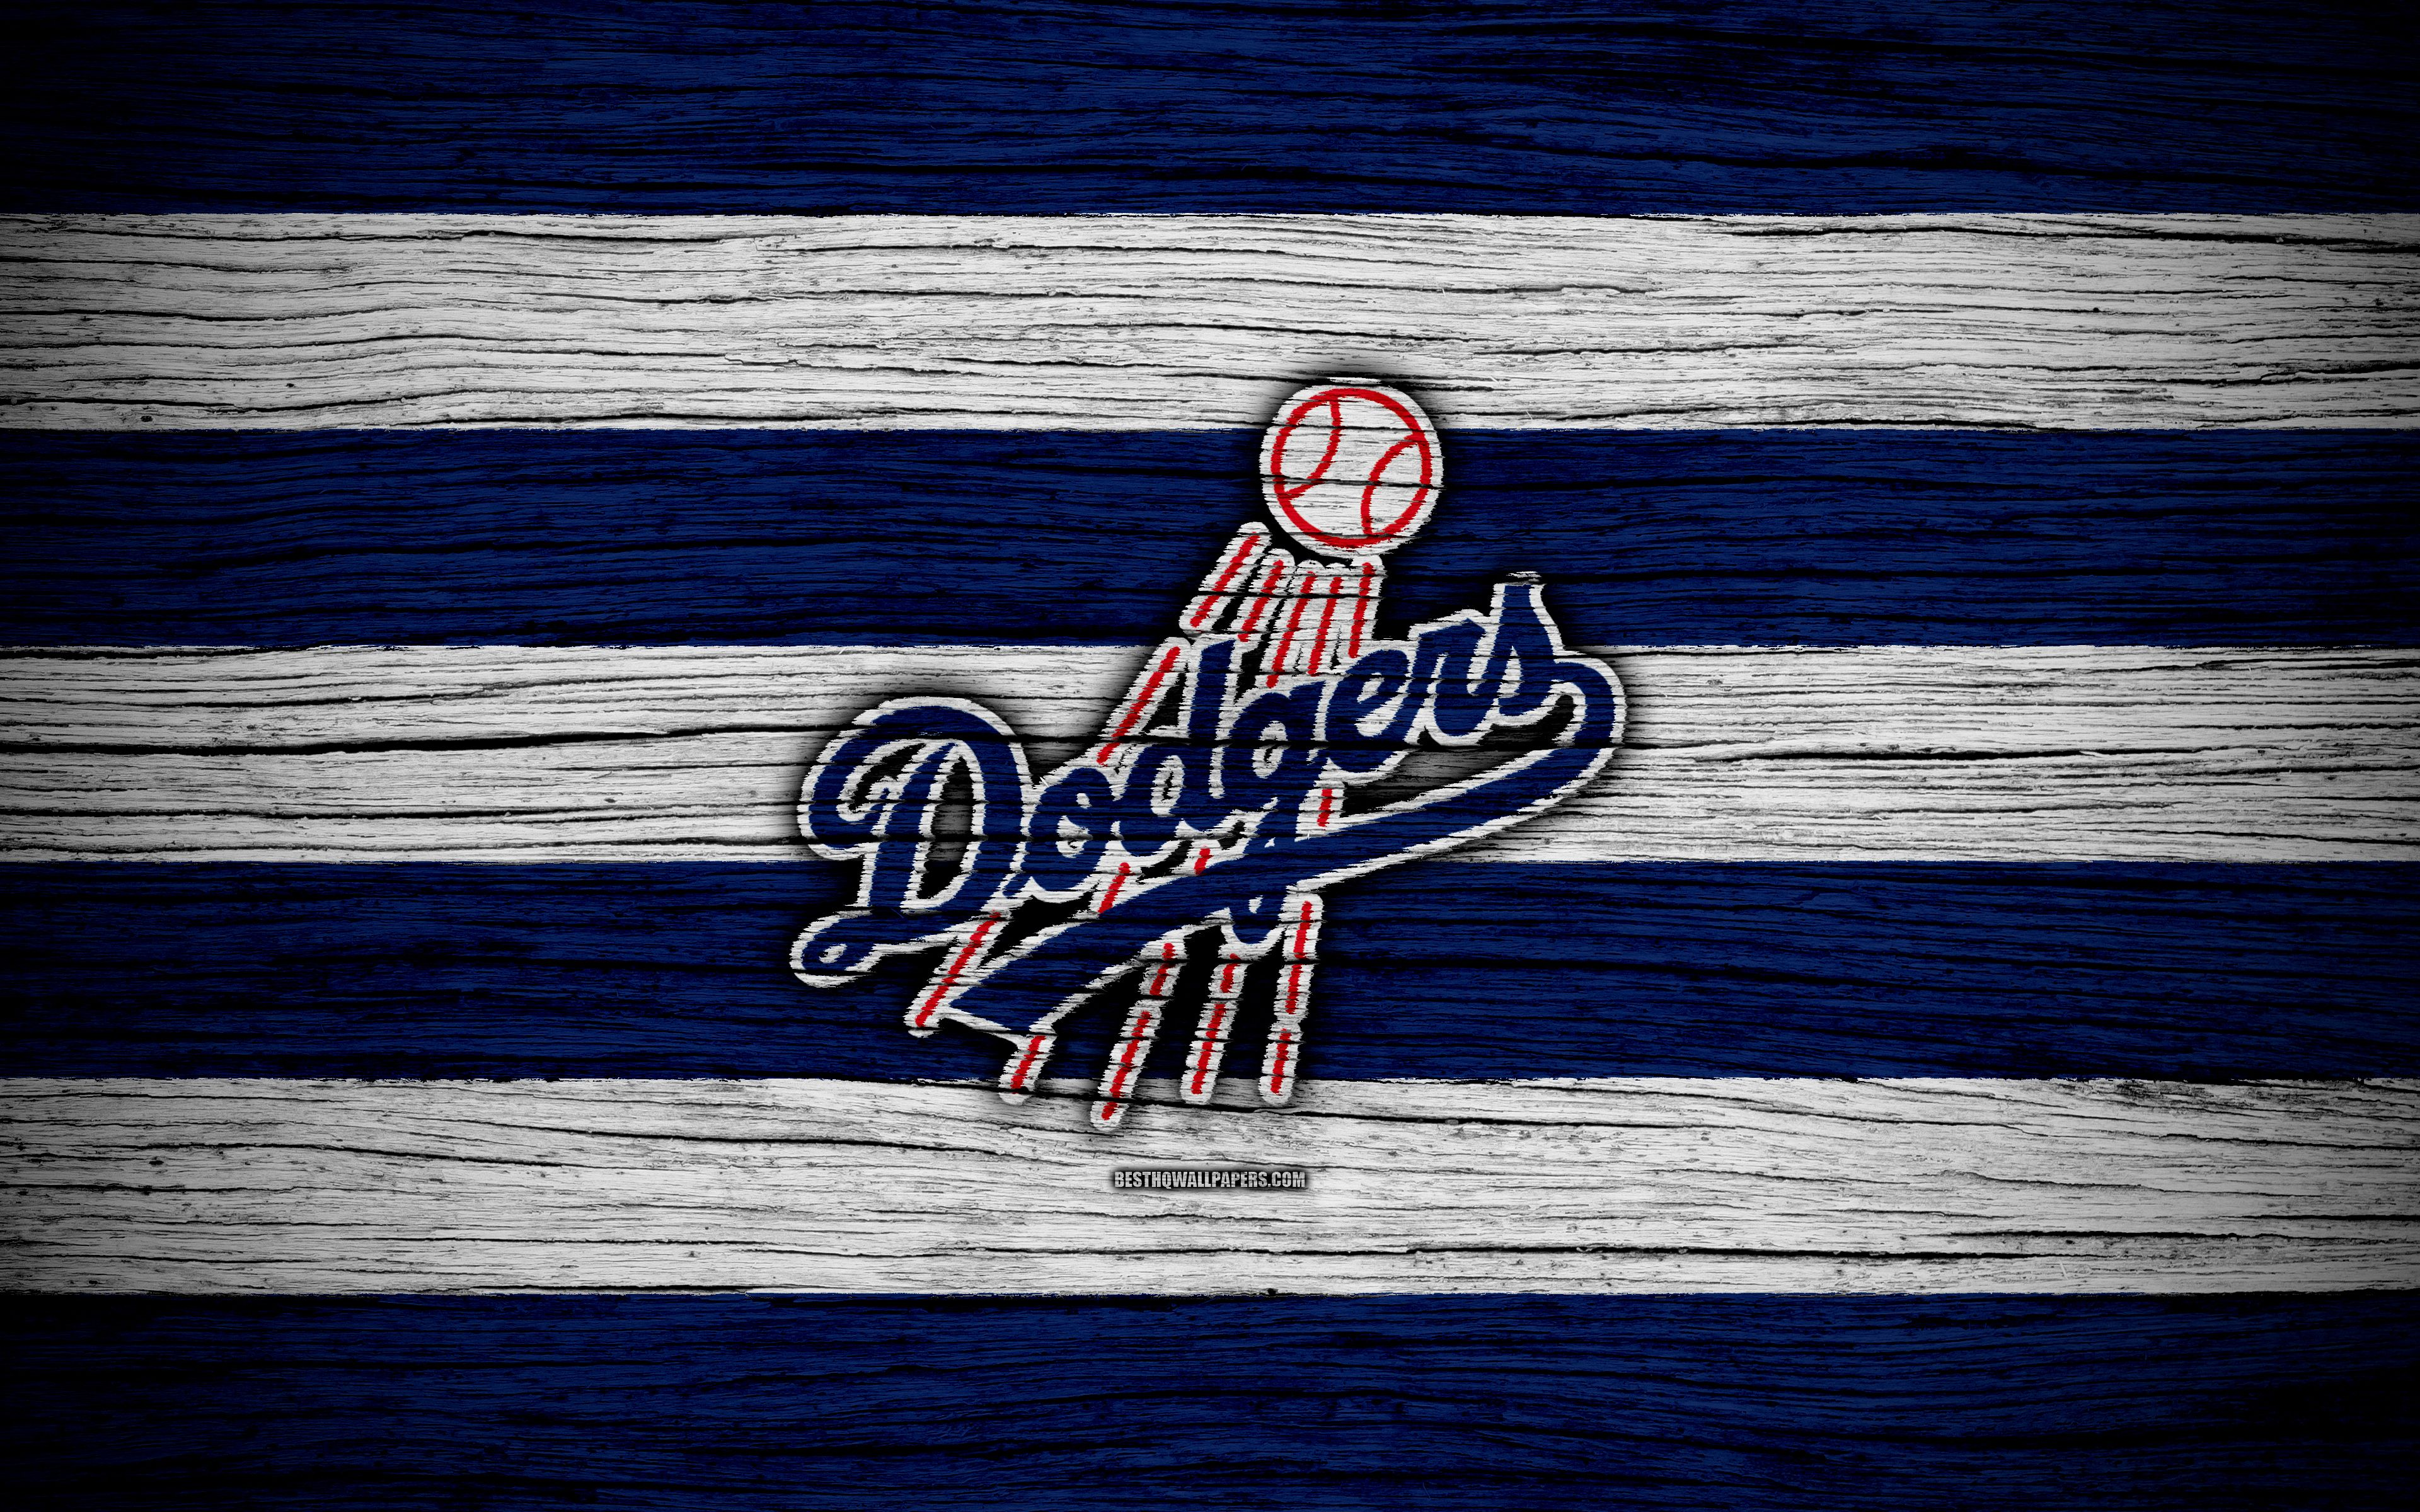 Los Angeles Dodgers Wallpapers Top Free Los Angeles Dodgers